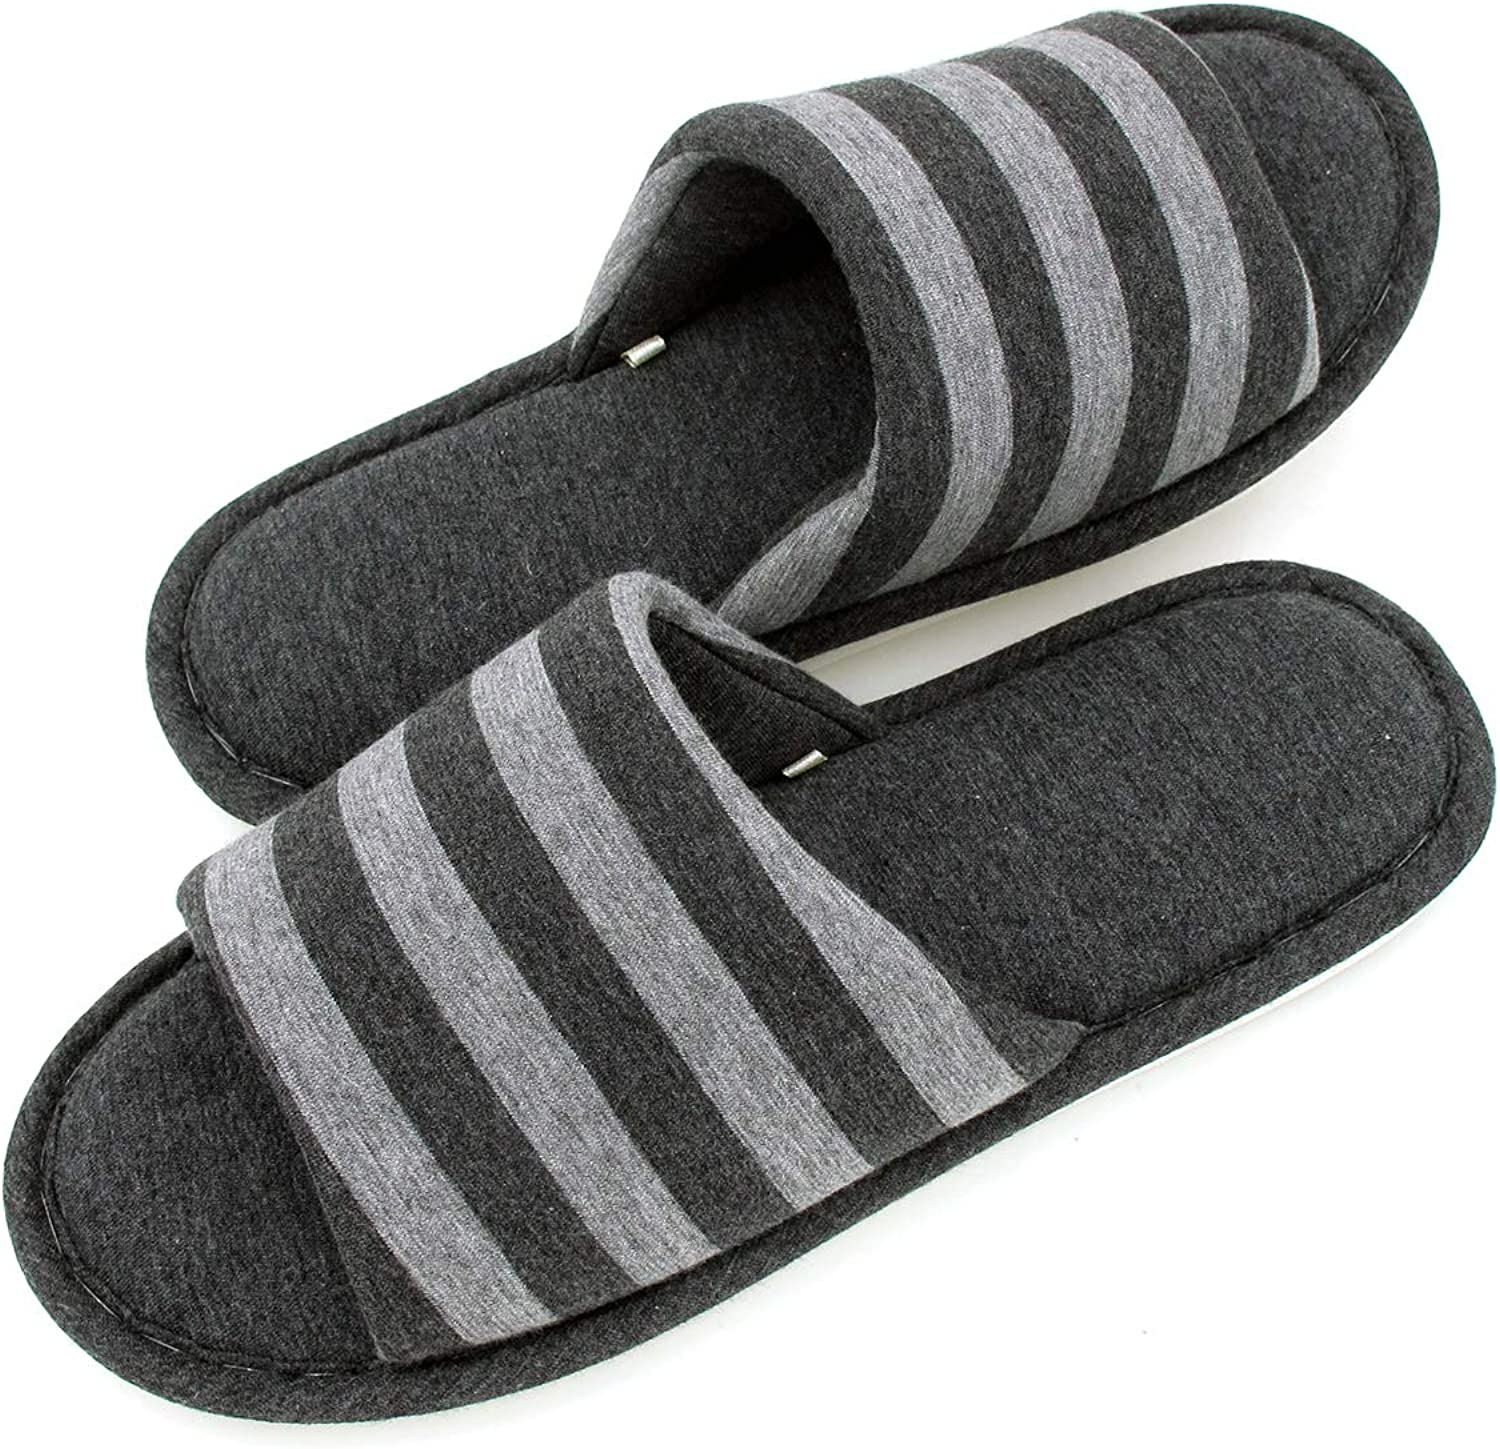 Sunshine Code Men's Women's Memory Foam Cotton Washable Stripe Slippers for Travel House Hotel Spa Bedroom